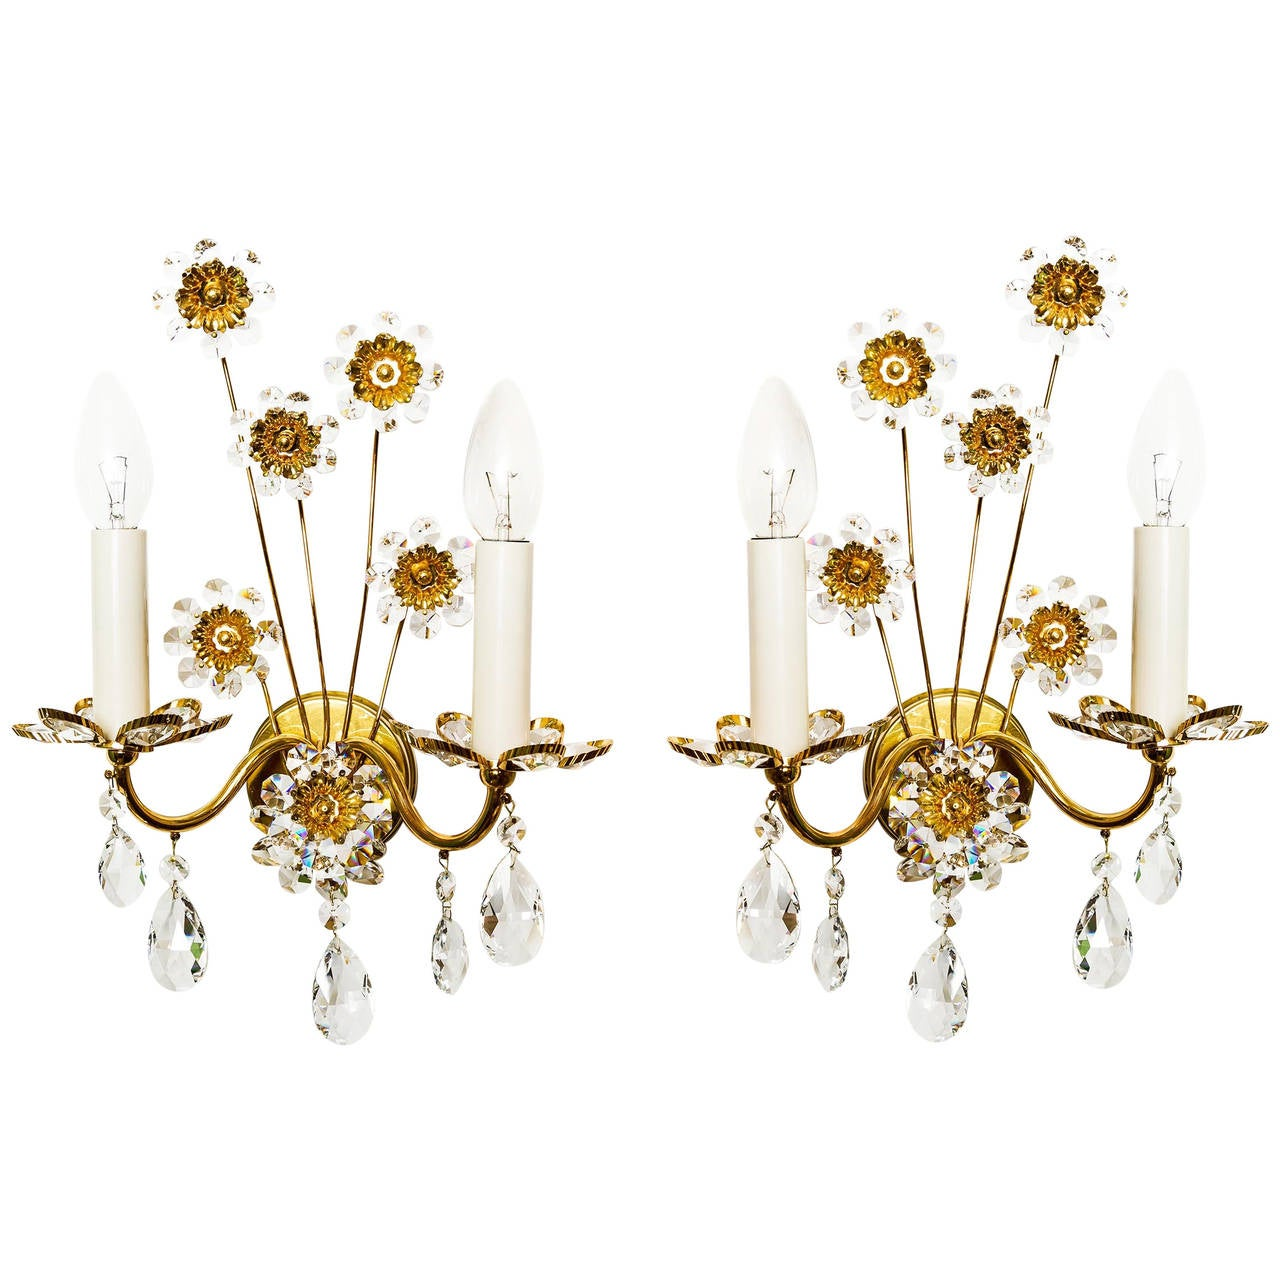 Pair of Floral Sconces Wall Lights by Palwa, Gold Plated Brass Crystal, 1960s at 1stdibs